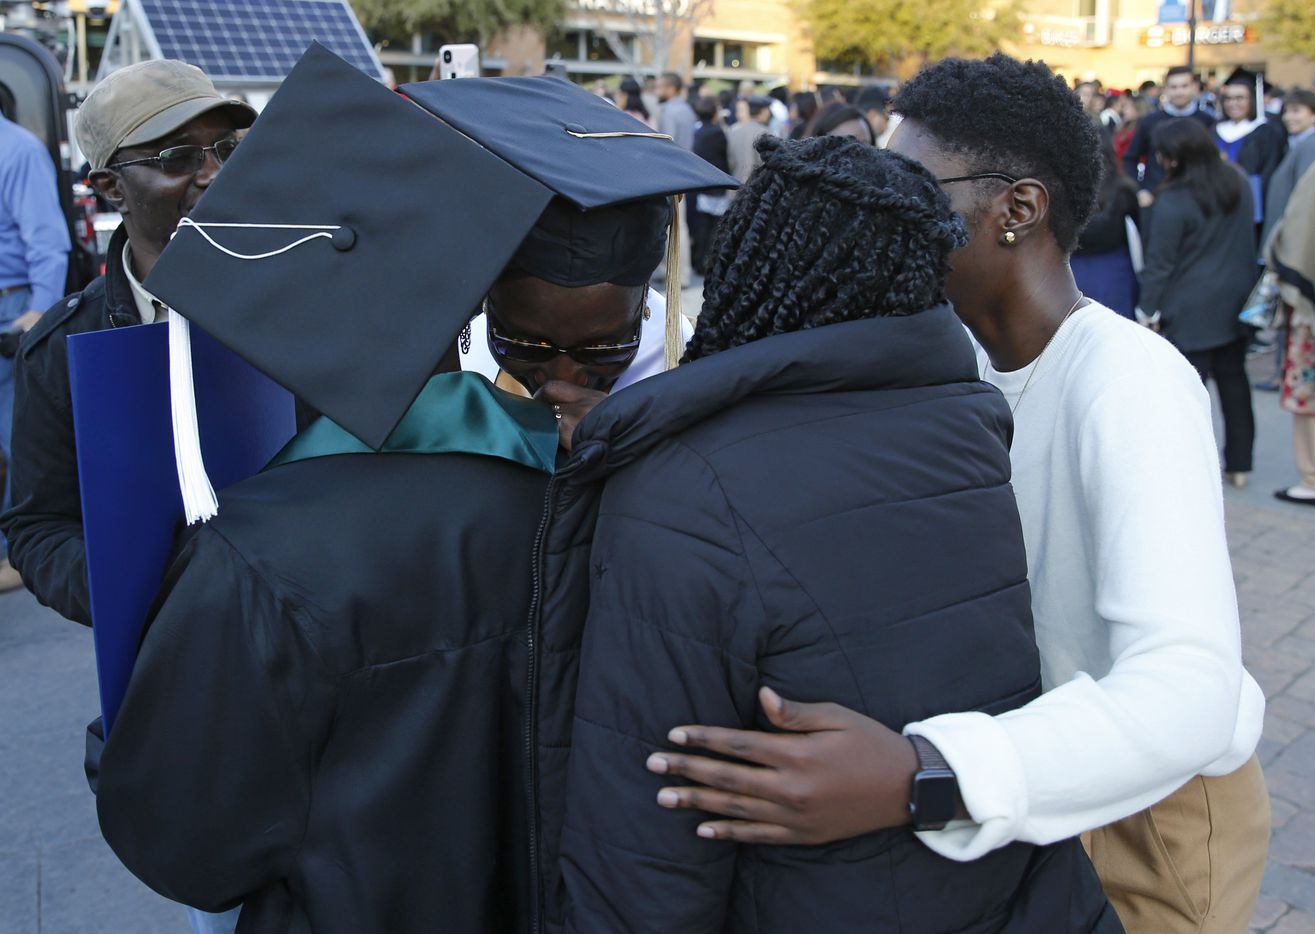 Ndeye Ndaw (center) gets emotional as her three daughters hug her after she and Awa Sy, her oldest, graduated from the University of Texas at Arlington on the same day.